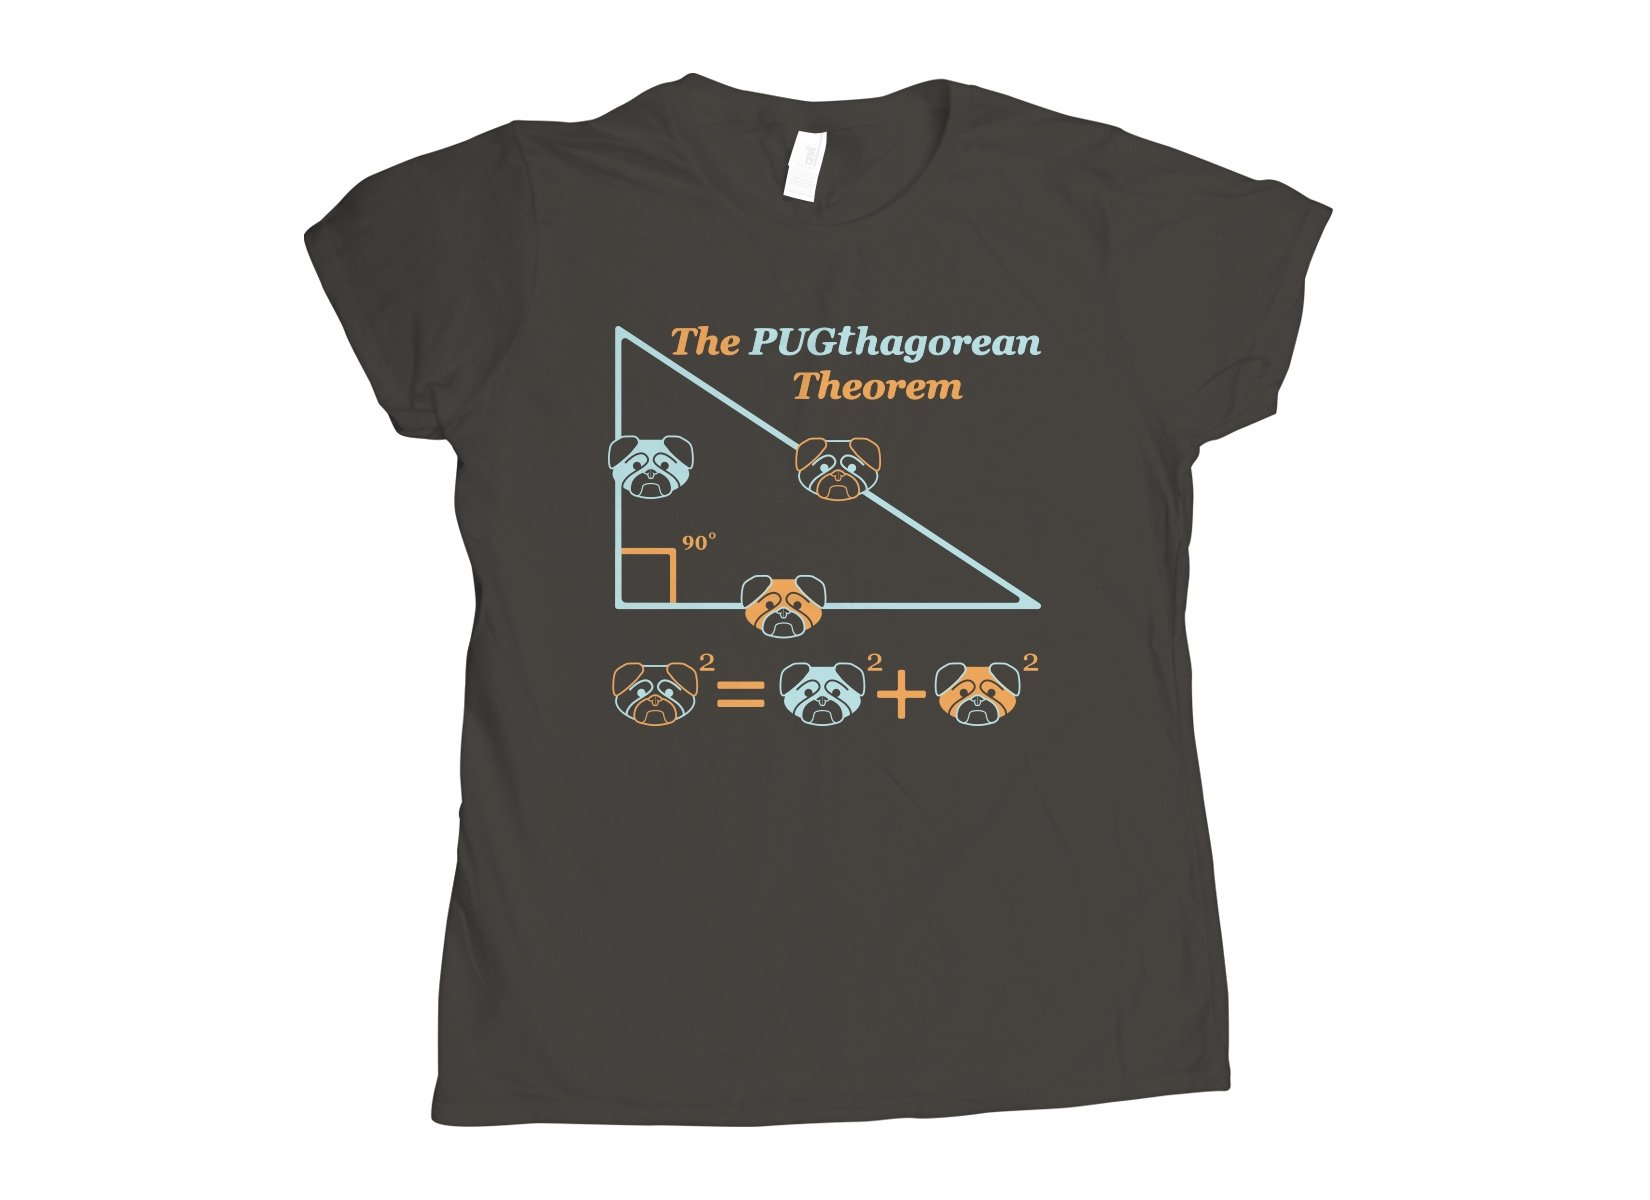 Pugthagorean Theorem on Womens T-Shirt